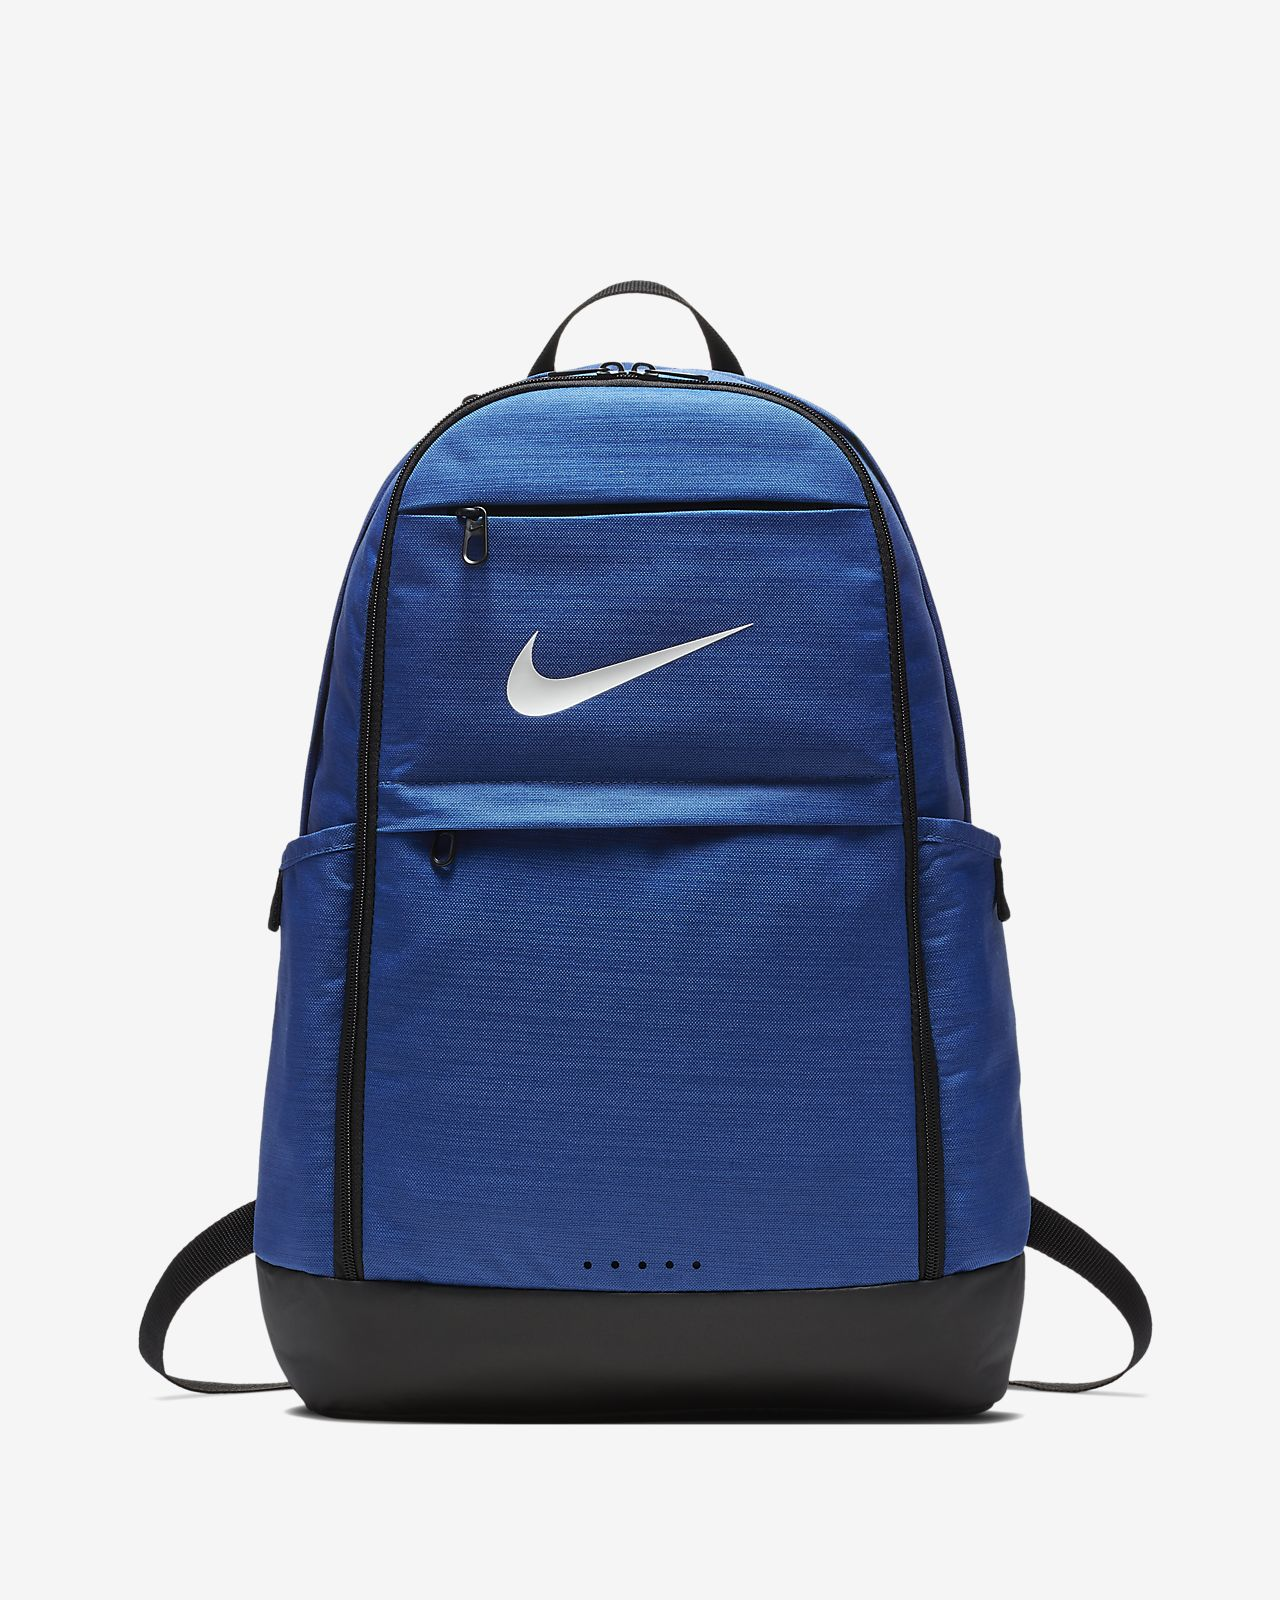 8d1303124e305 Nike Brasilia Training Backpack (Extra Large). Nike.com